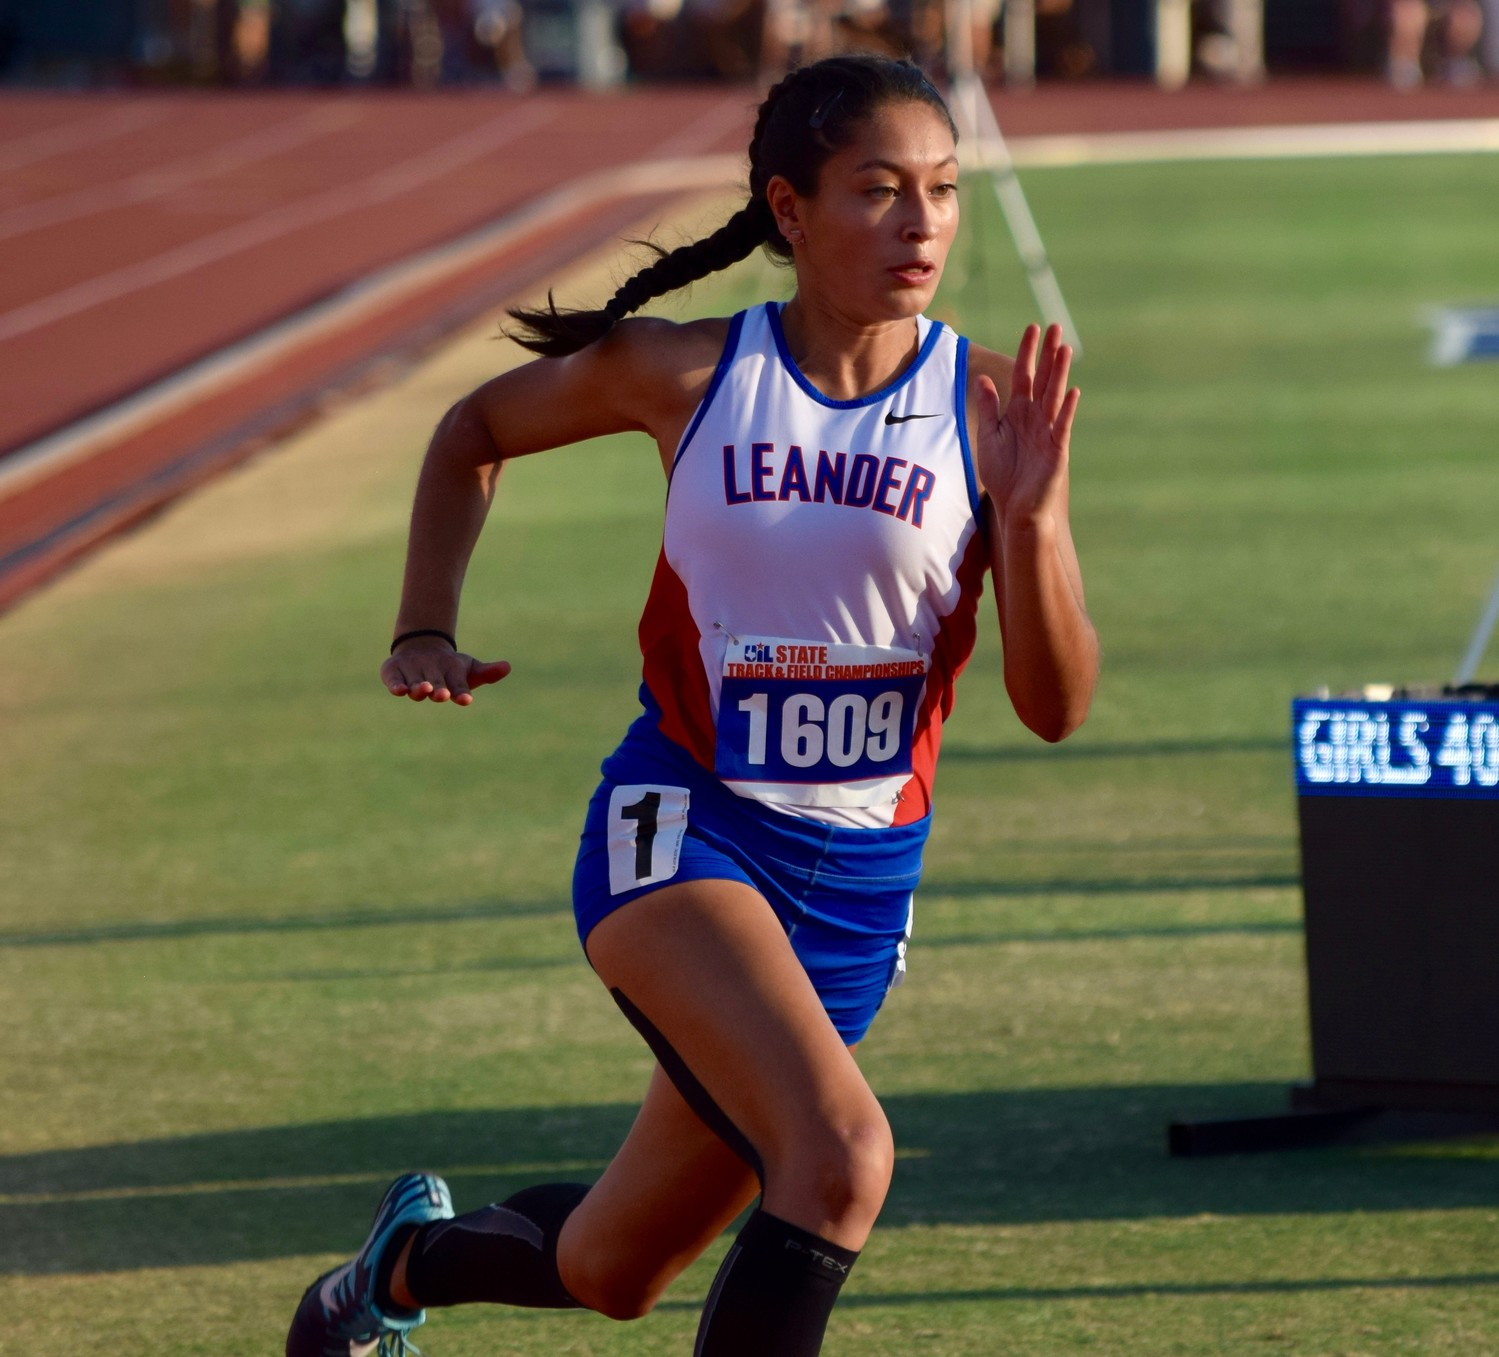 Leander sophomore Elizabeth Roca finished seventh in the girls' 400-meter dash with a time of 59.80 at the State Track & Field meet.